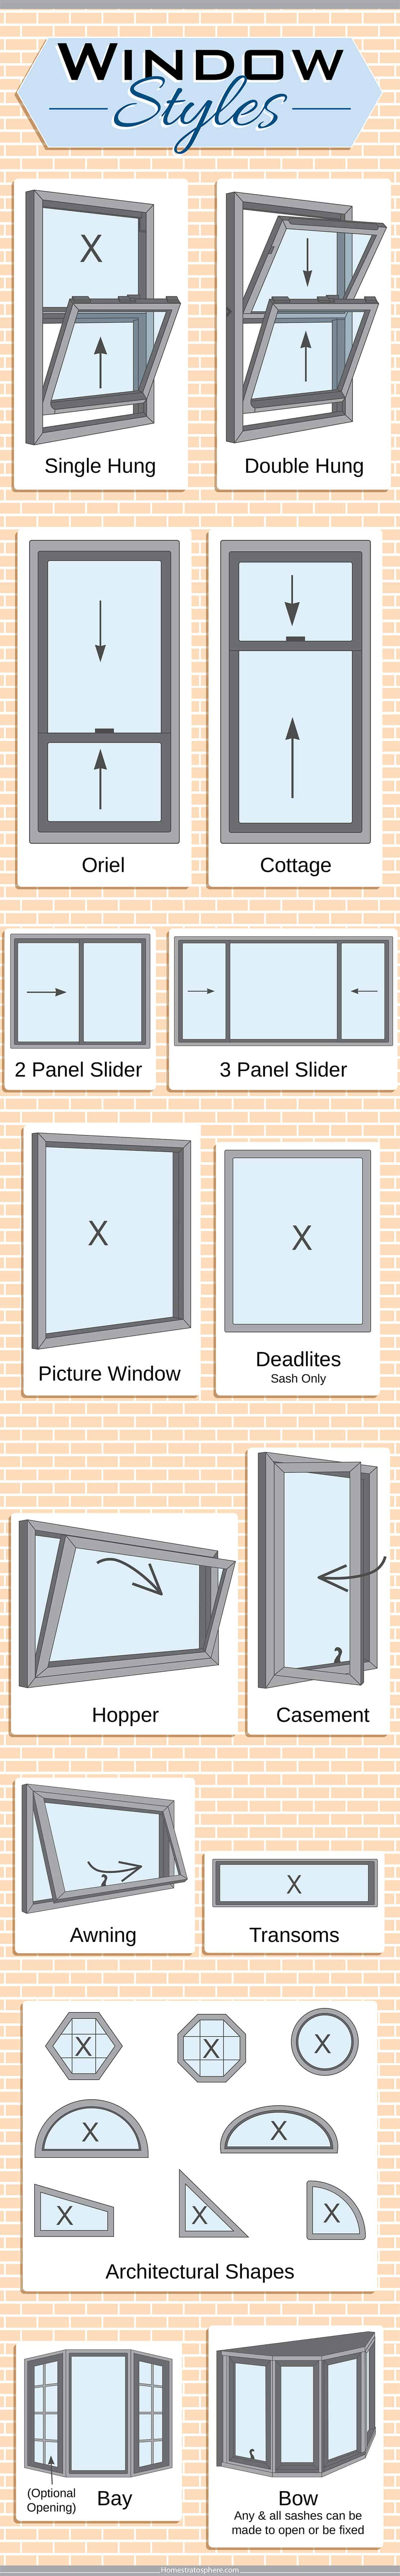 Window styles infographic